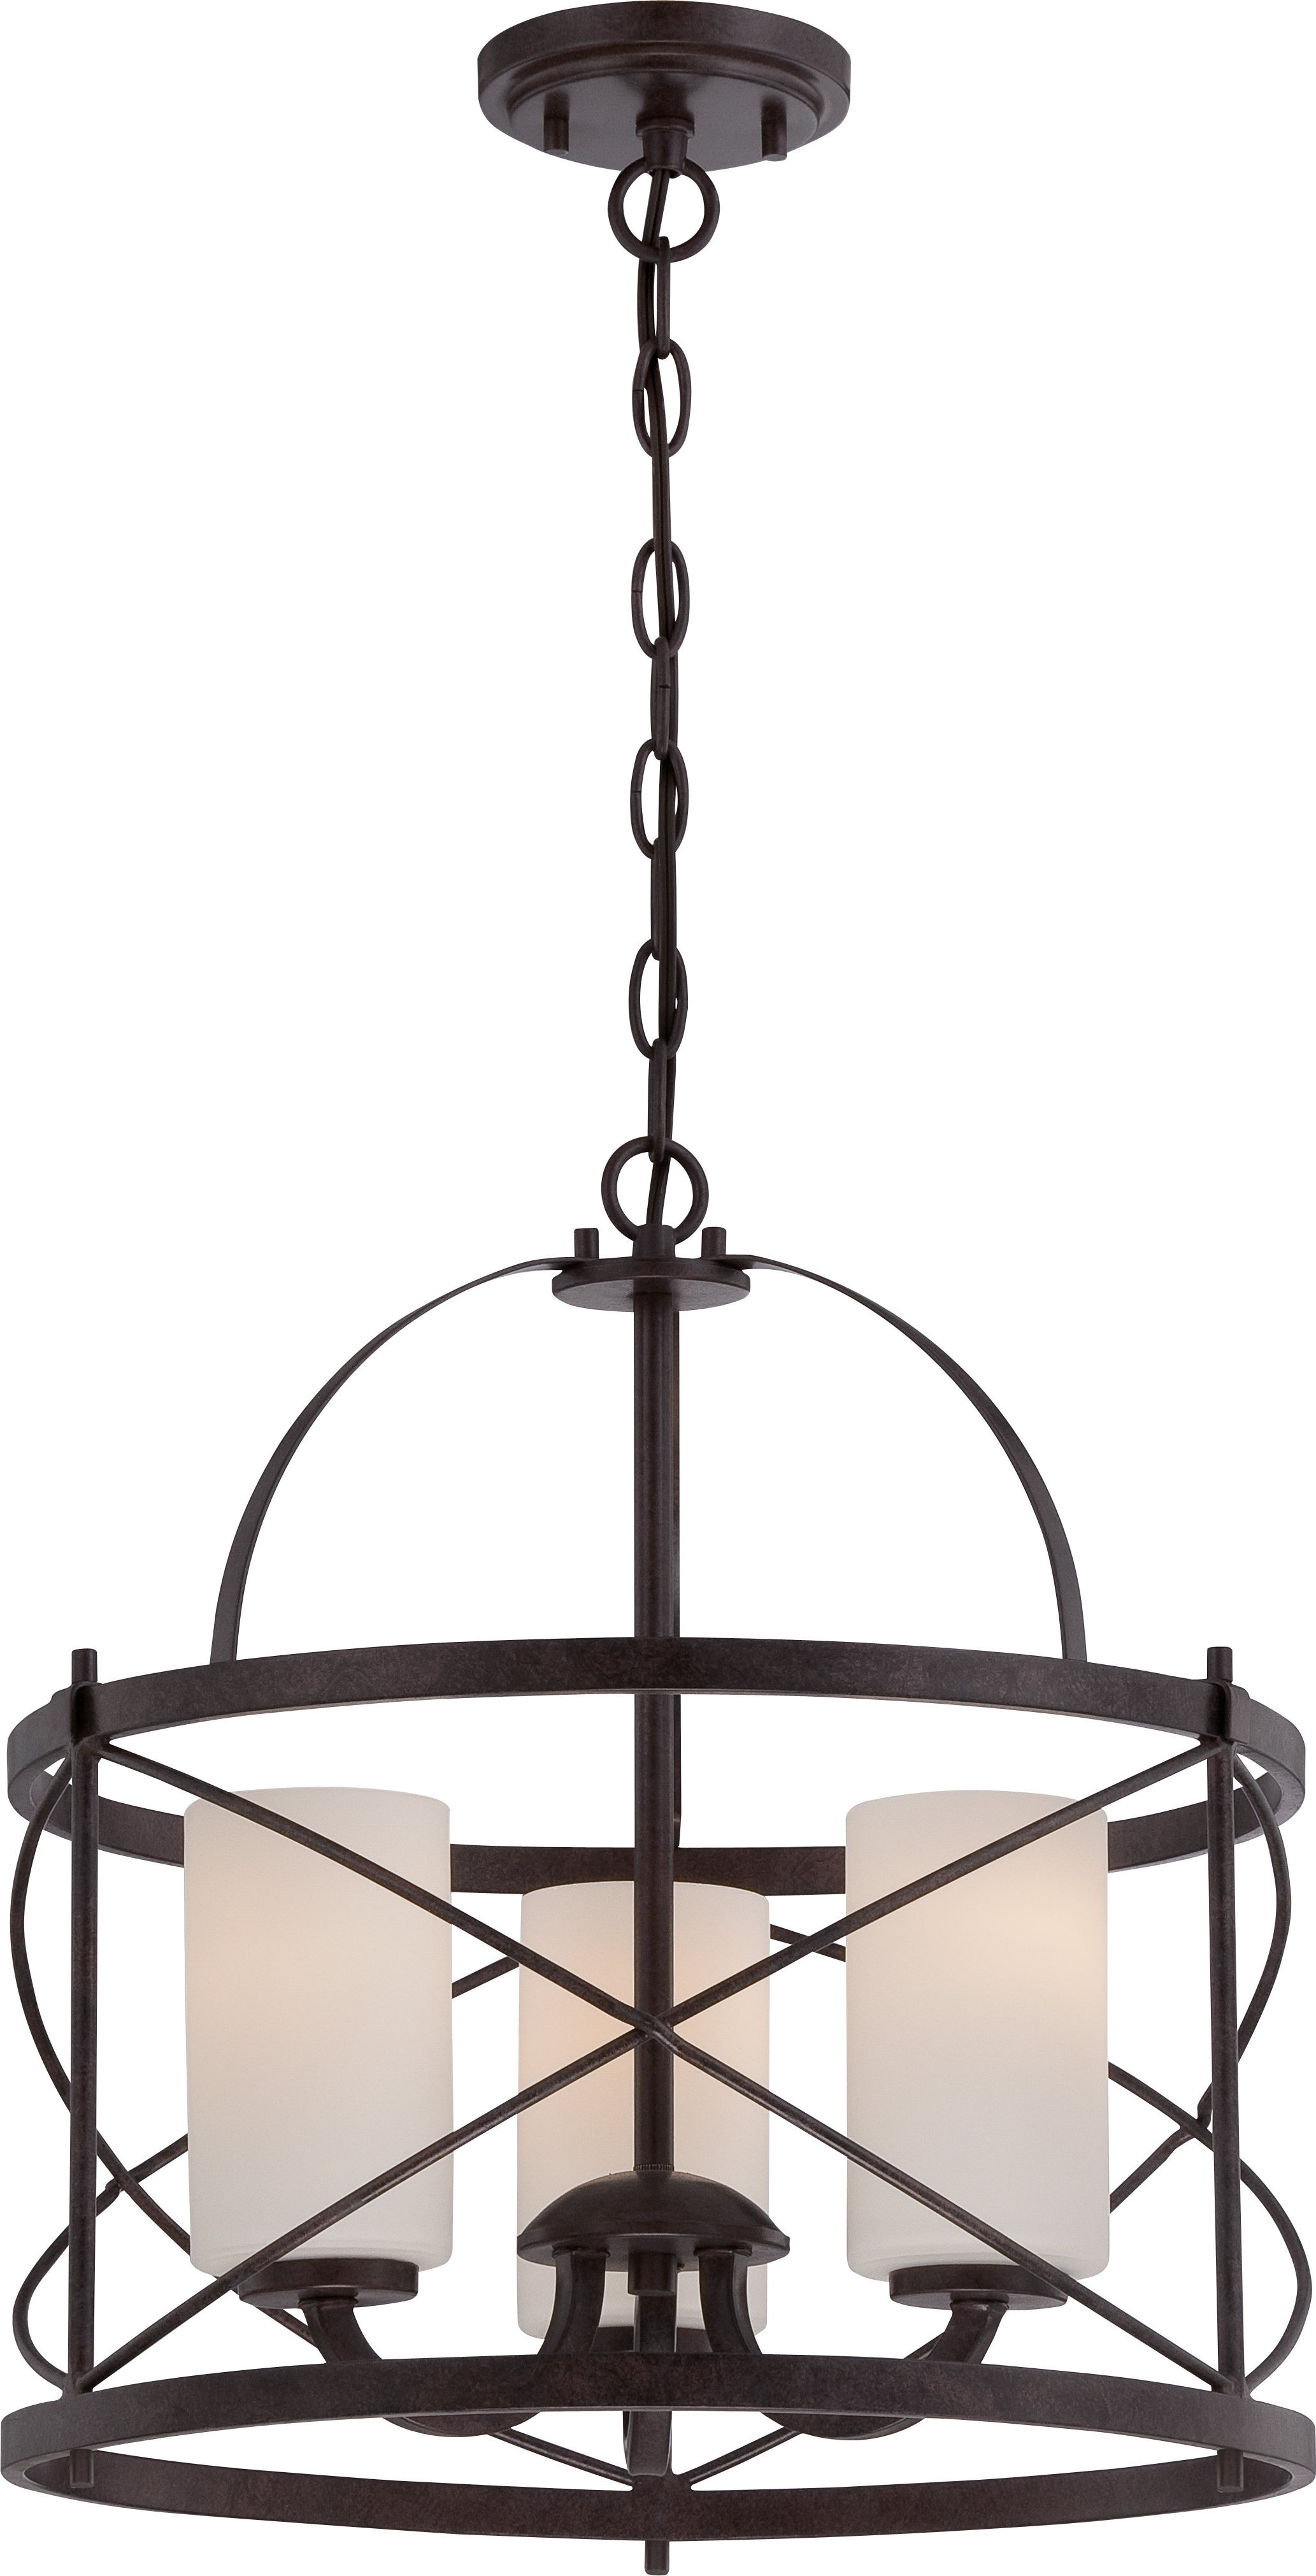 Popular Adcock 3 Light Single Globe Pendants Throughout Darby Home Co Farrier 3 Light Lantern Drum Pendant (View 20 of 20)